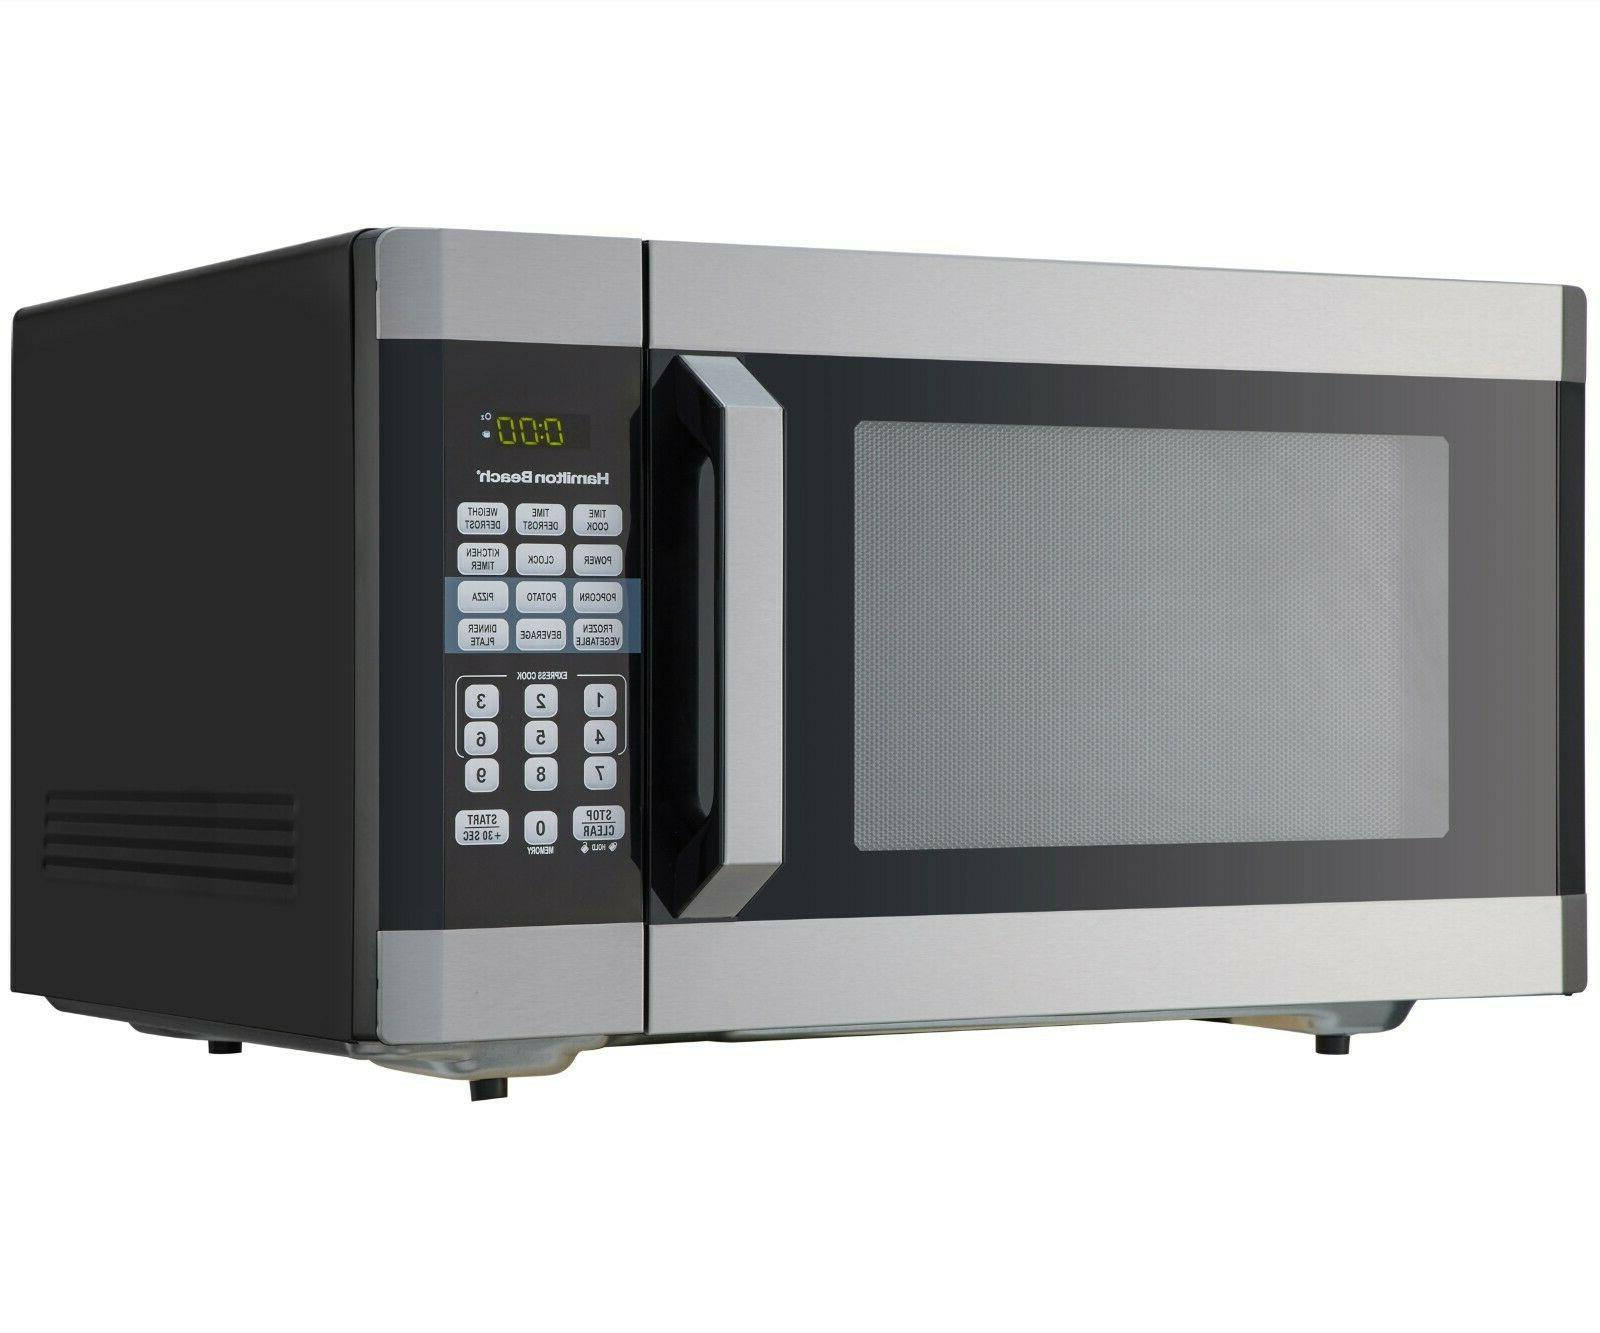 Microwave 1.6 Ft Touch Screen Stainless